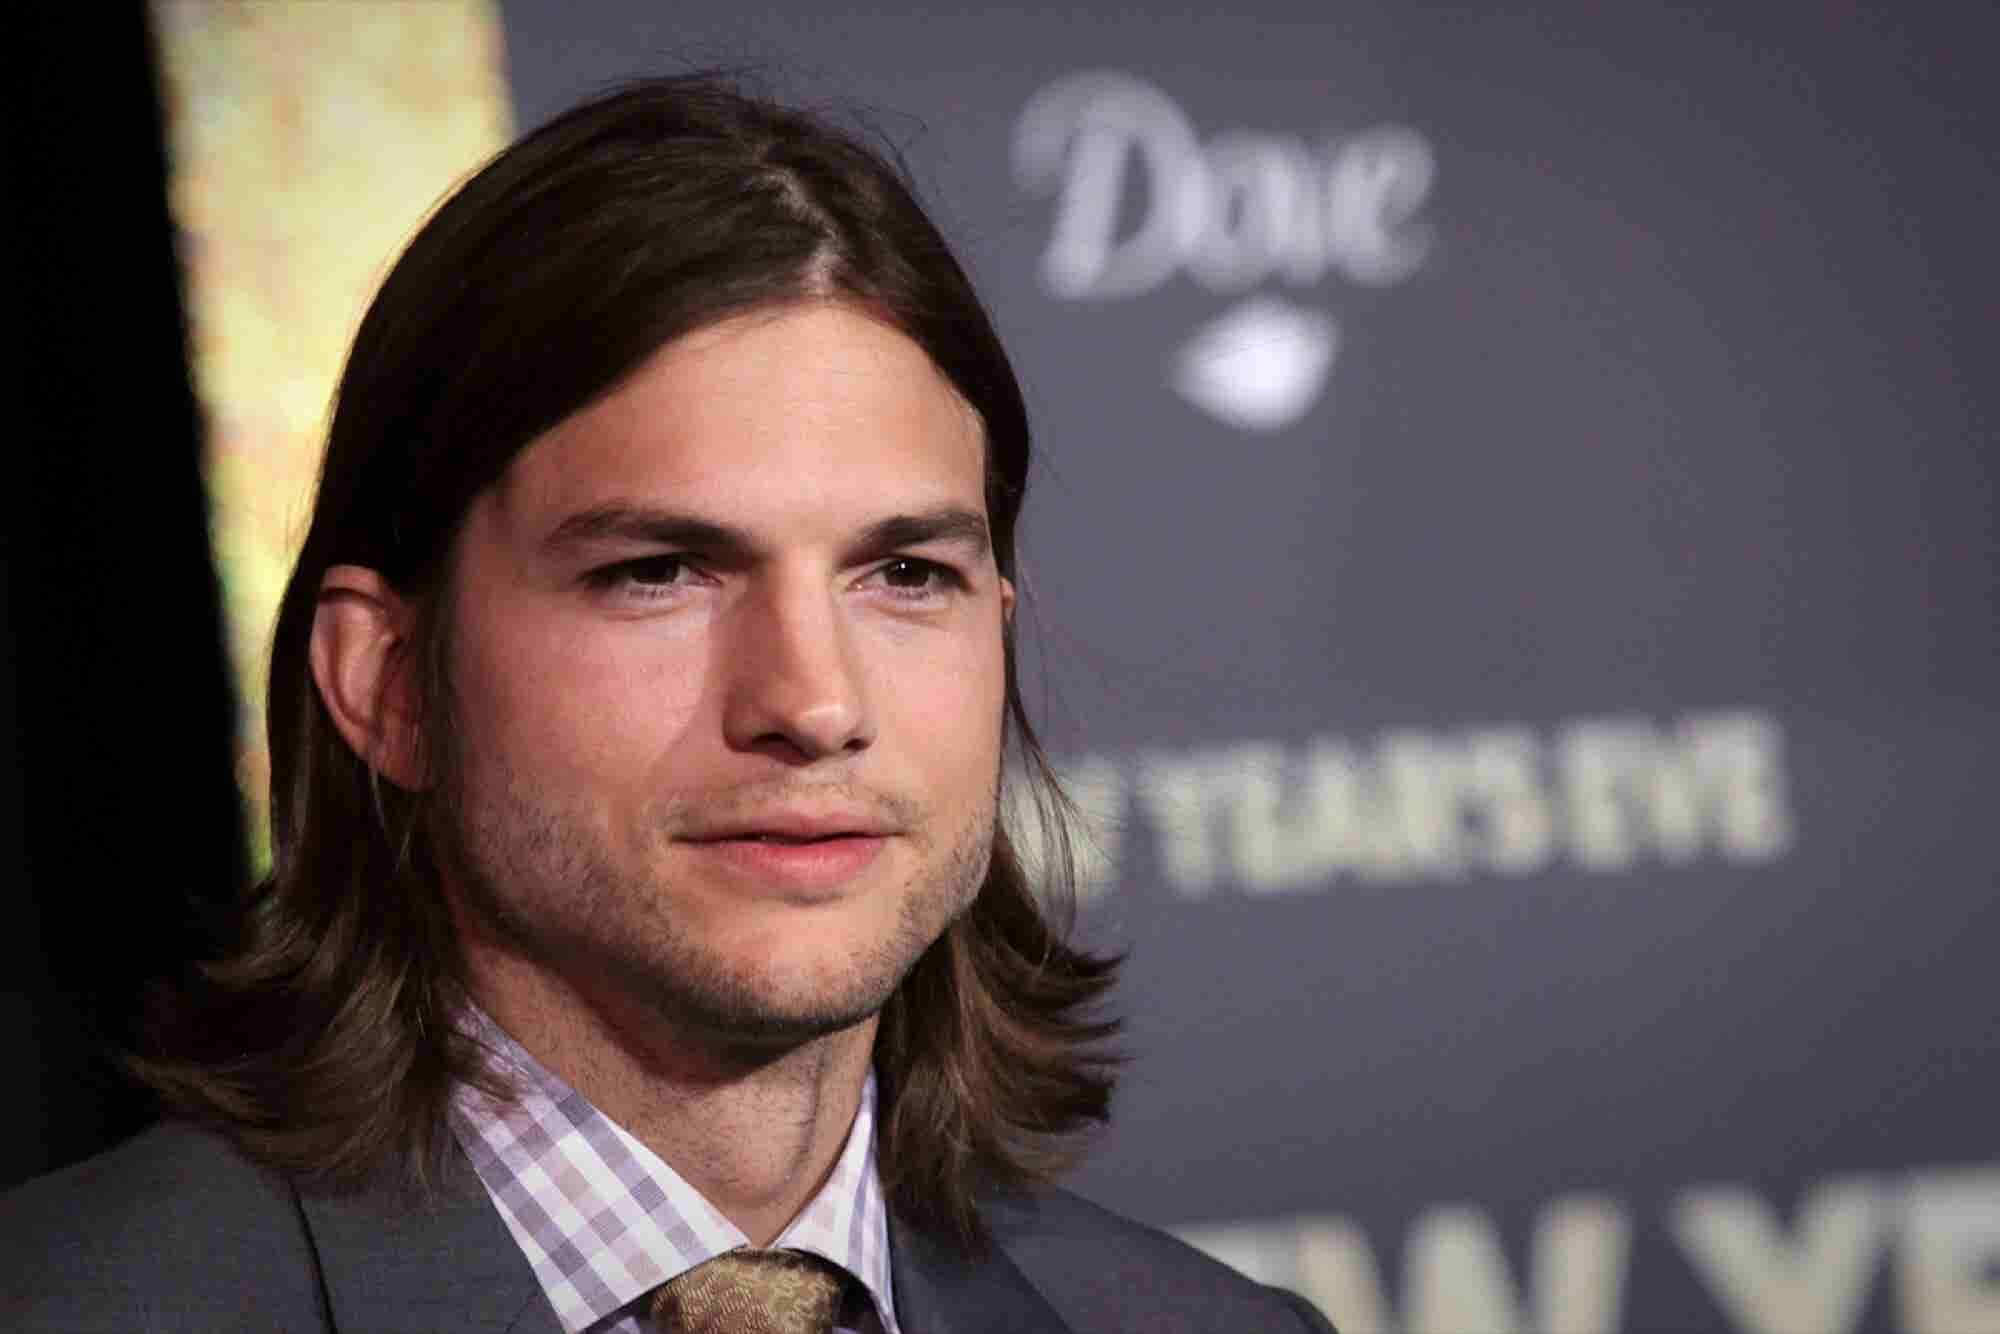 How to Make Money Investing, According to Ashton Kutcher